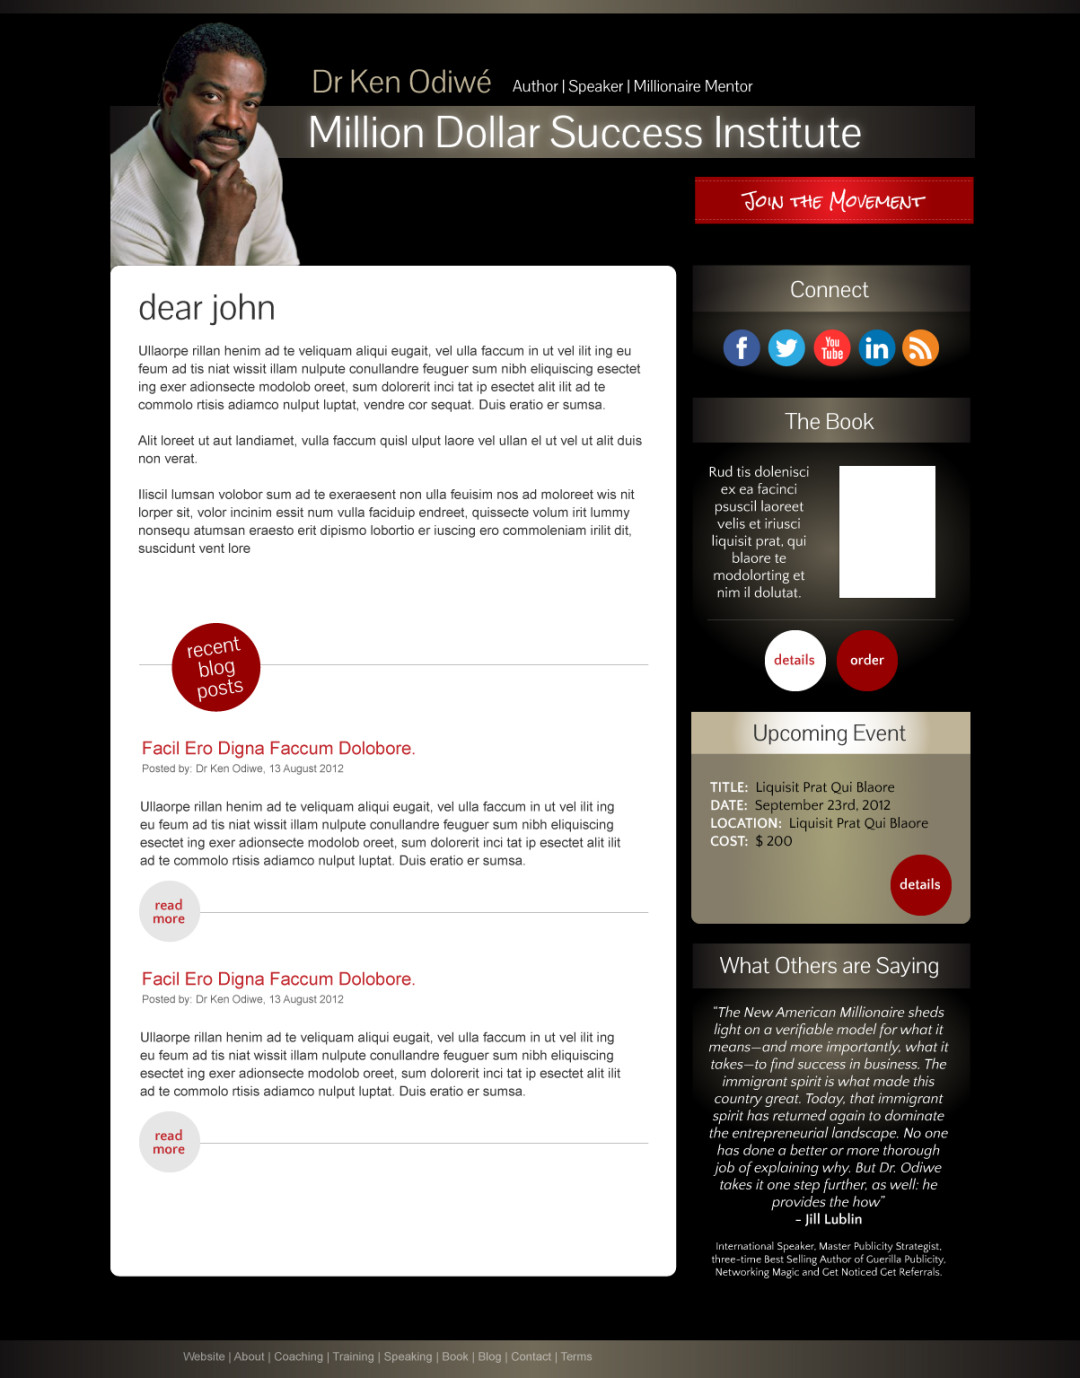 Email Marketing Newsletter for Dr Ken Odiwe